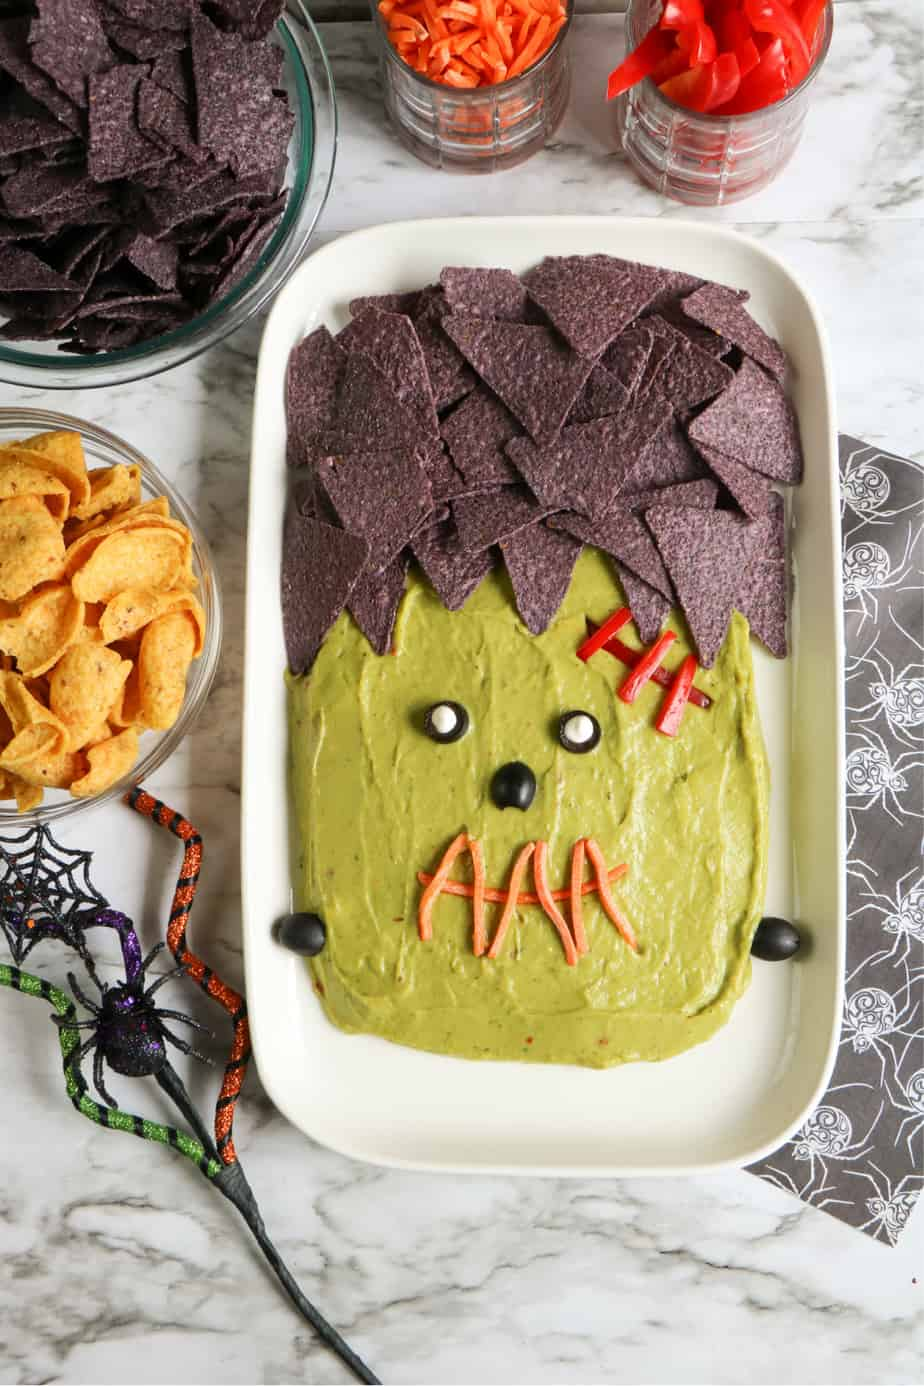 Plater of guacamole decorated to look like Frankenstein with jars of chips and veggies to dip in bowls